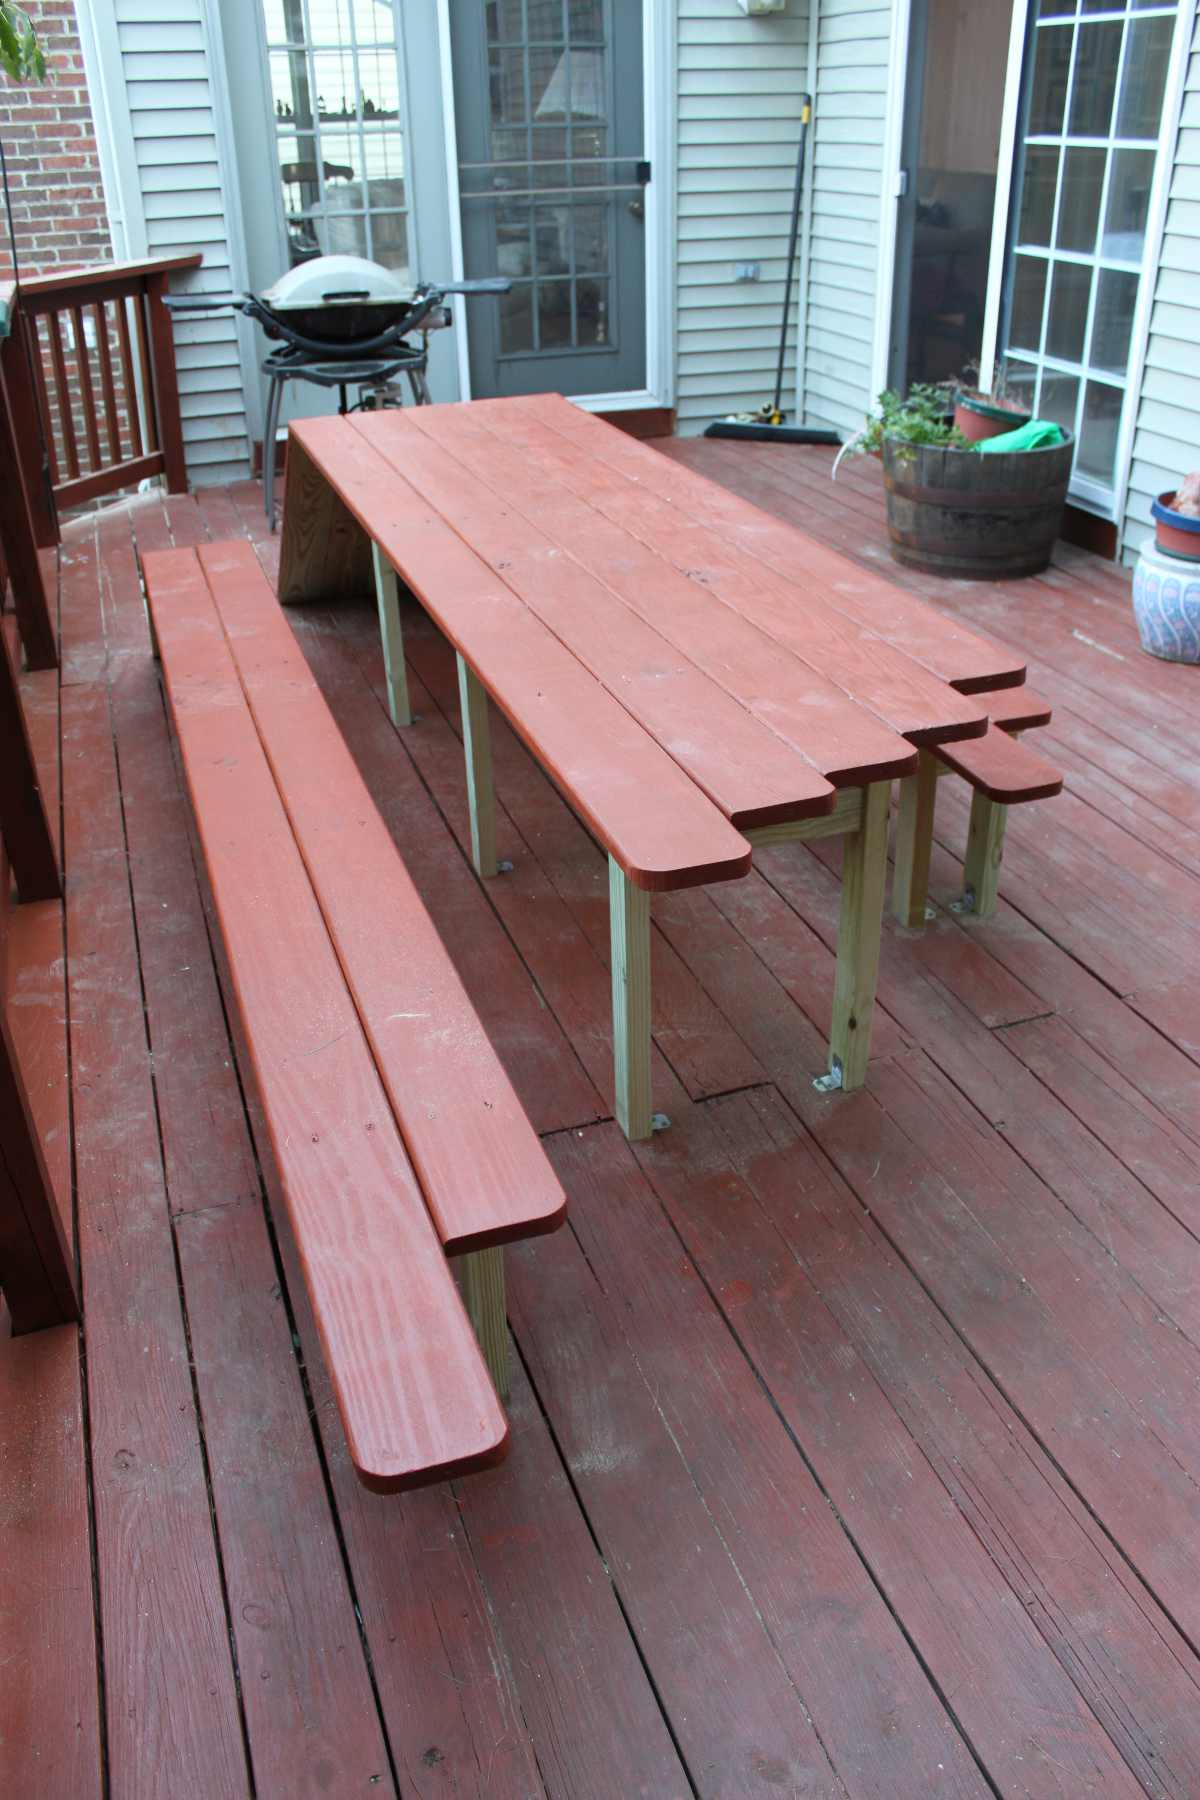 Deck Table Adam Achrati - Pentagon picnic table